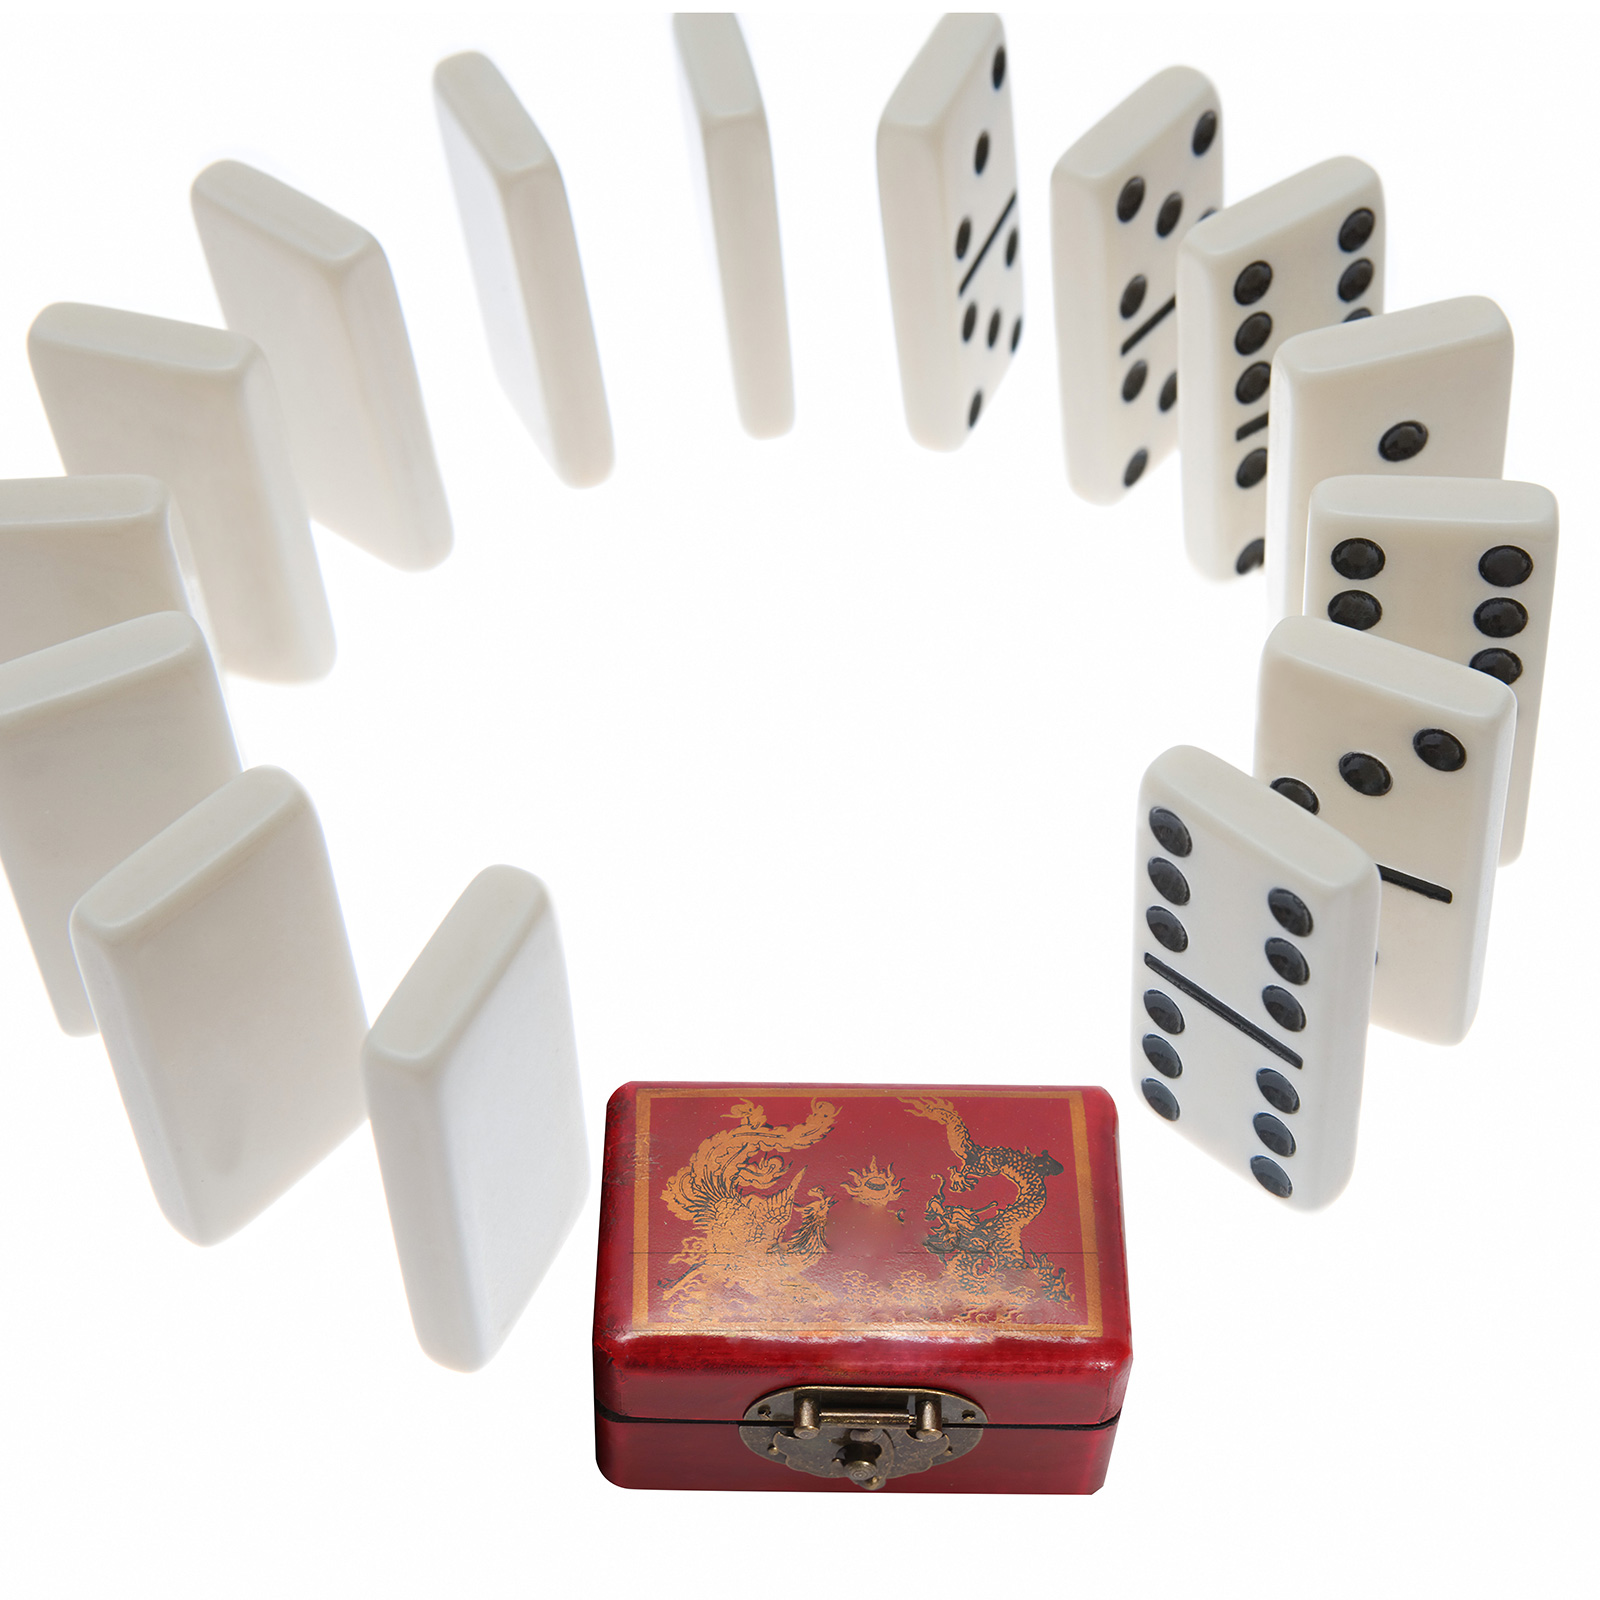 High Playability Dominoes Game Set 28 Pieces Educational Portable Antique Domino Box Classic Dominoes Toys For Children Adult